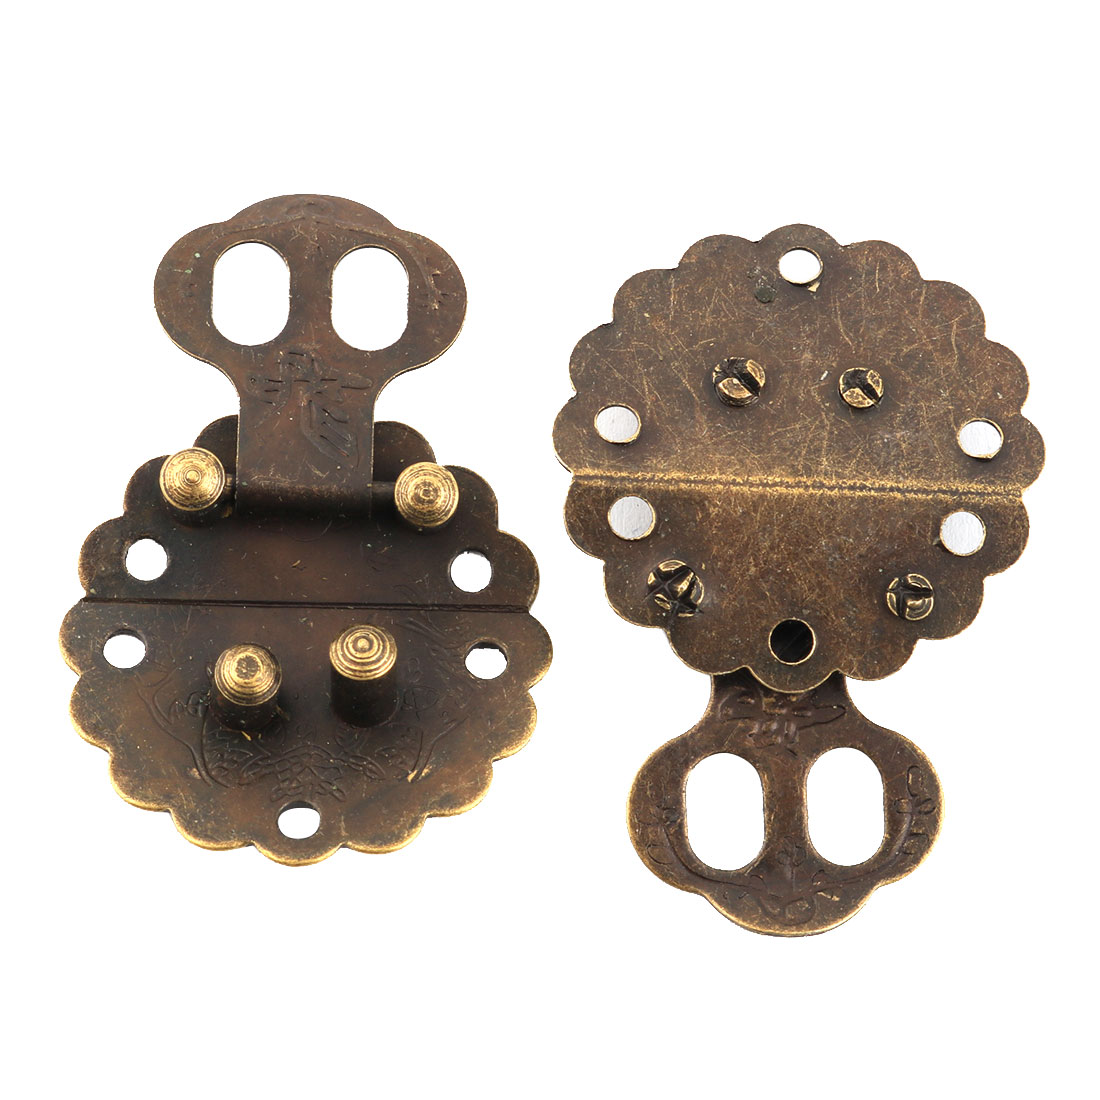 2pcs Vintage Style Gift Jewelry Wooden Box Hasp Latch Lock Buckle Decorative